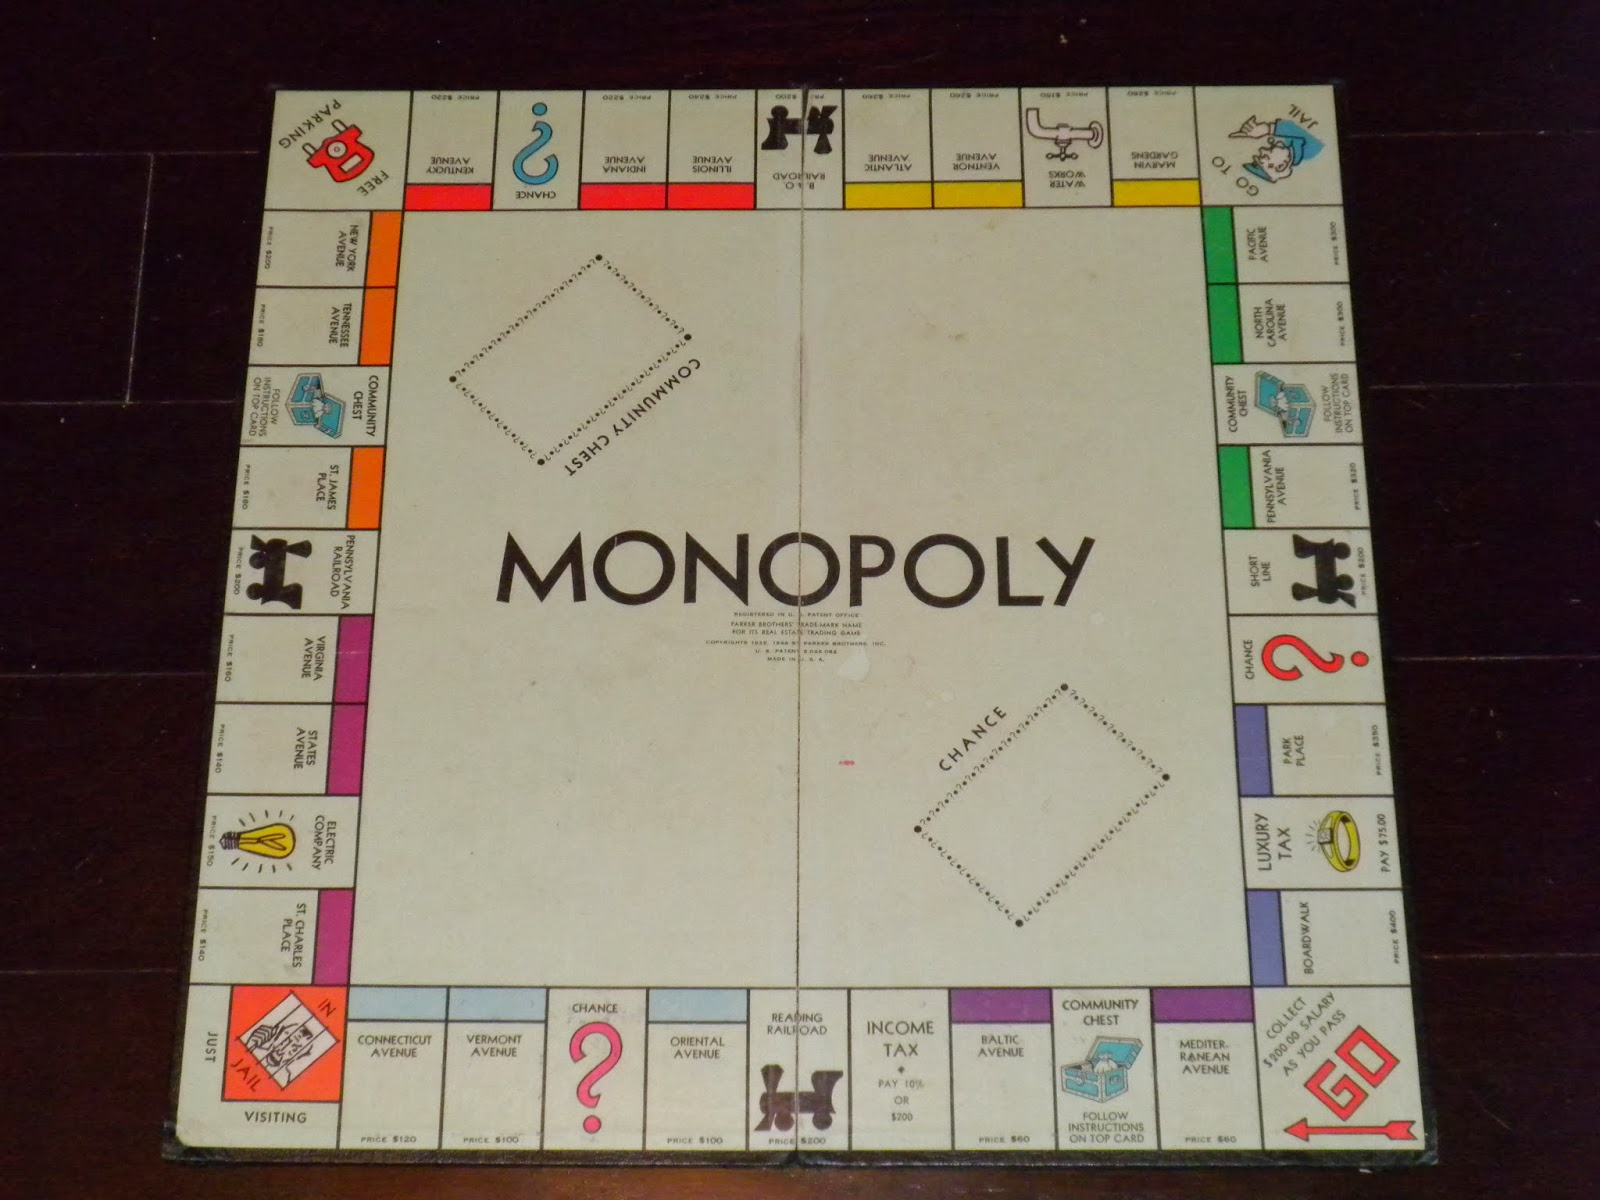 Monopoly Board Game shown on Substance of Living